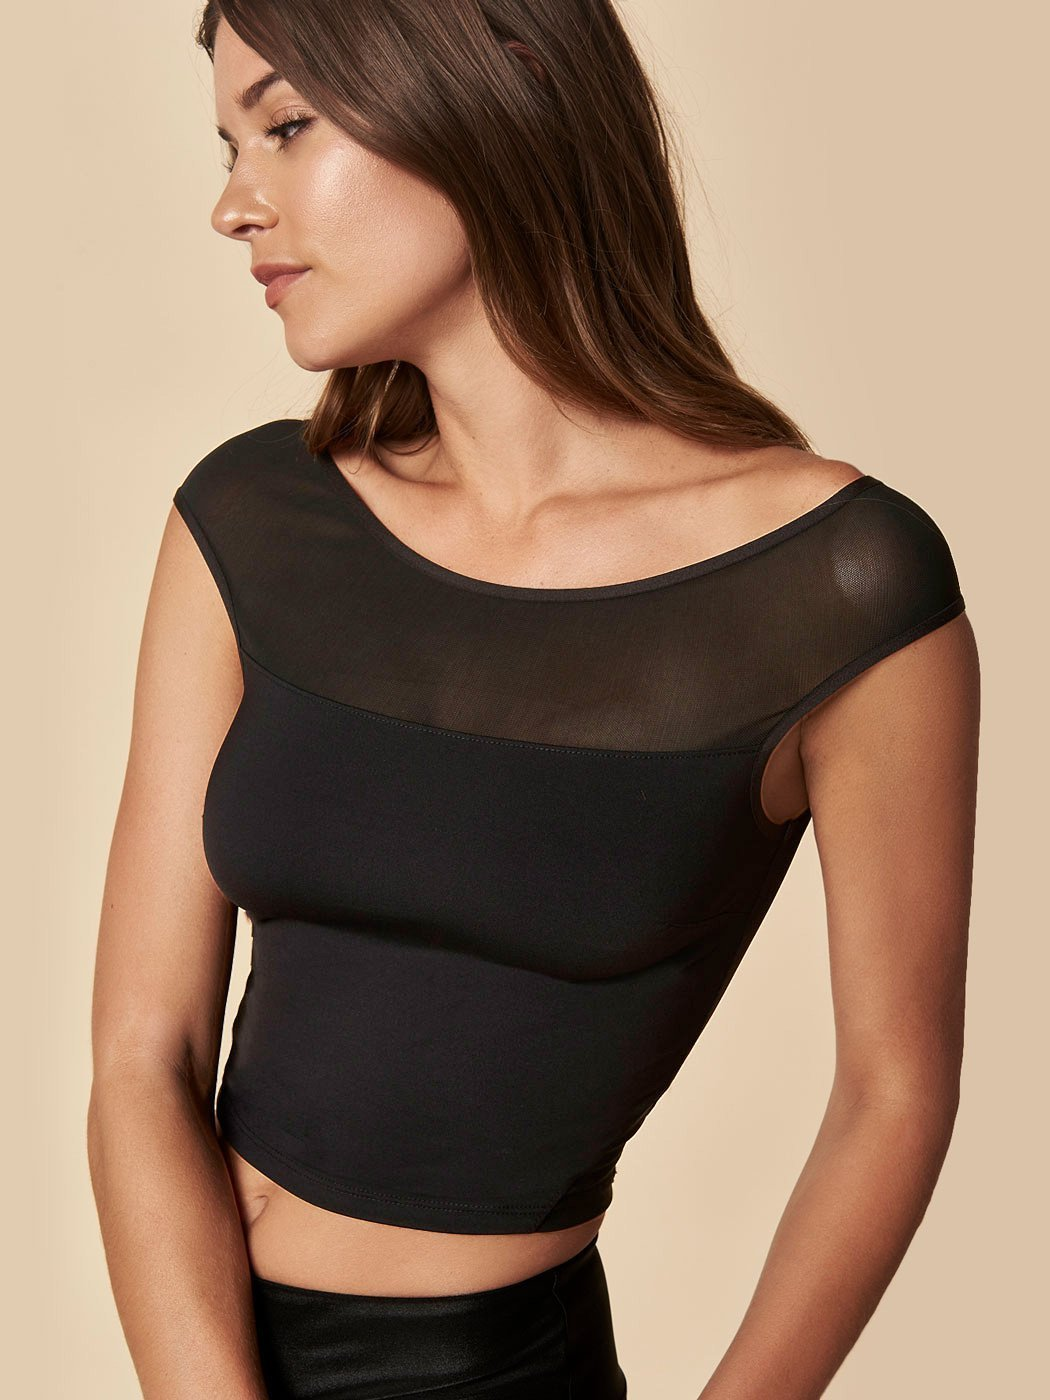 ENSMBL Tops Spinoff Mesh Top Black / XS / ENST14251